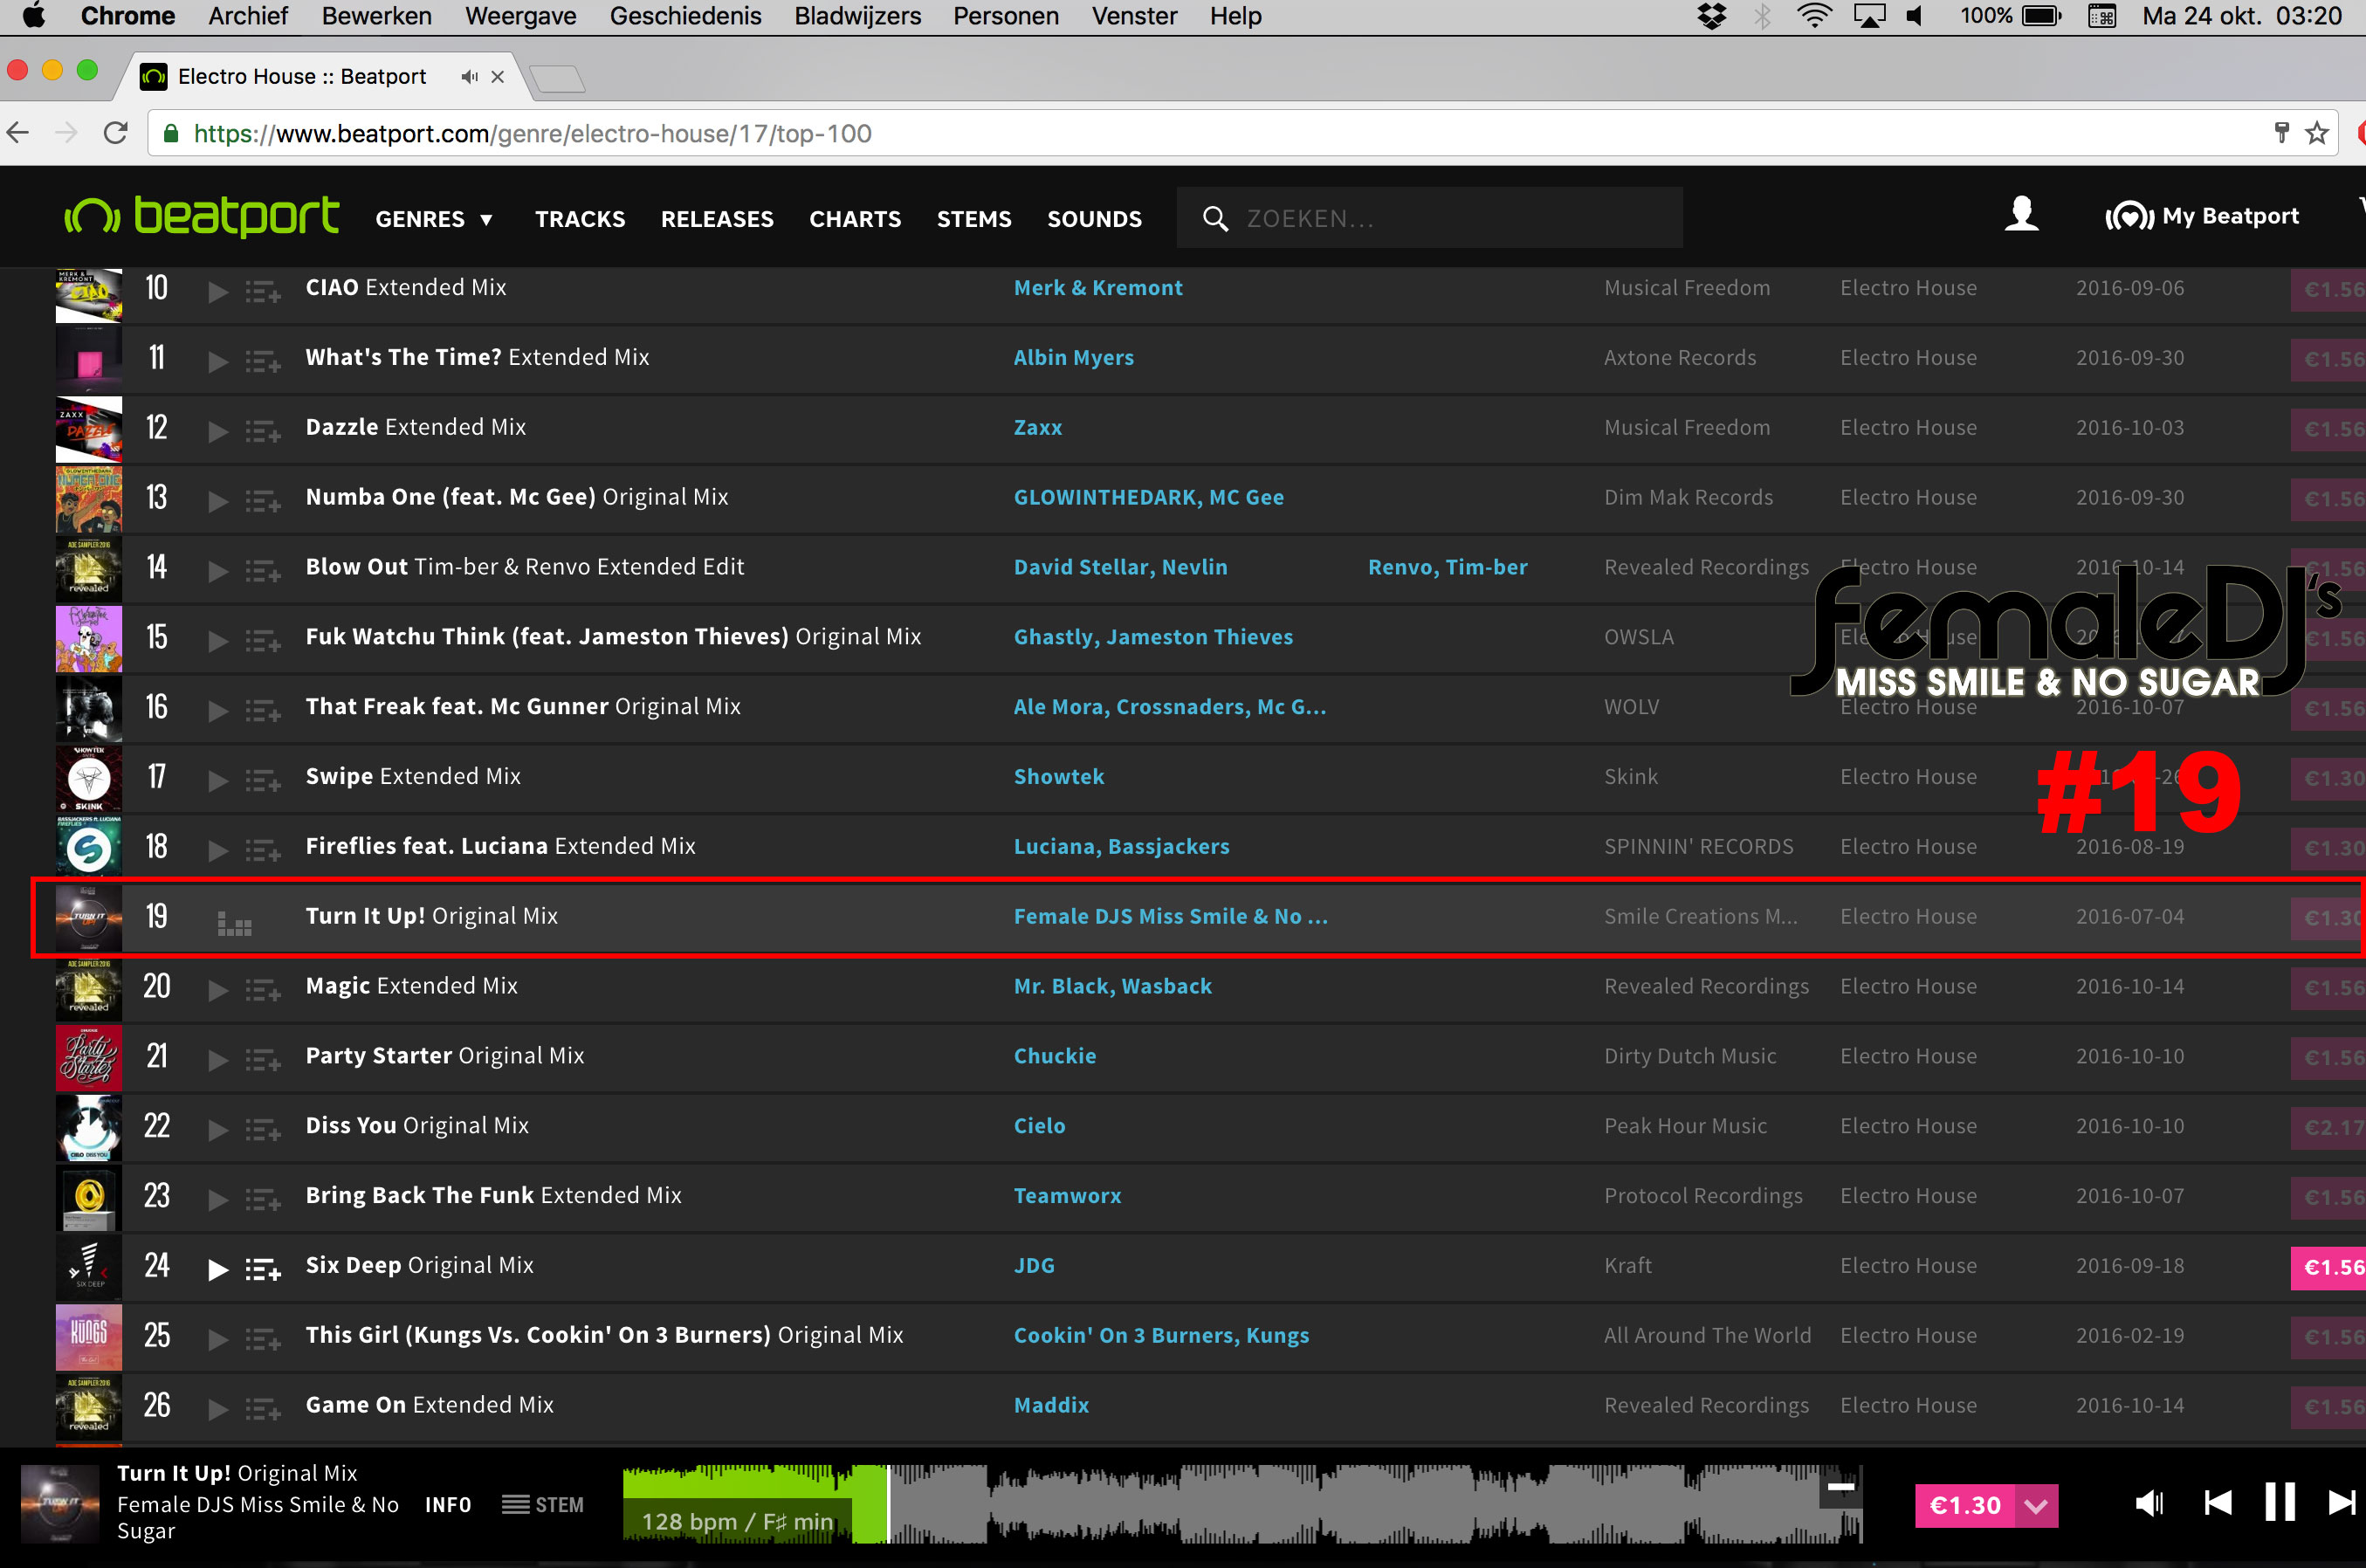 FEMALE DJS IN BEATPORT TOP 100 #19